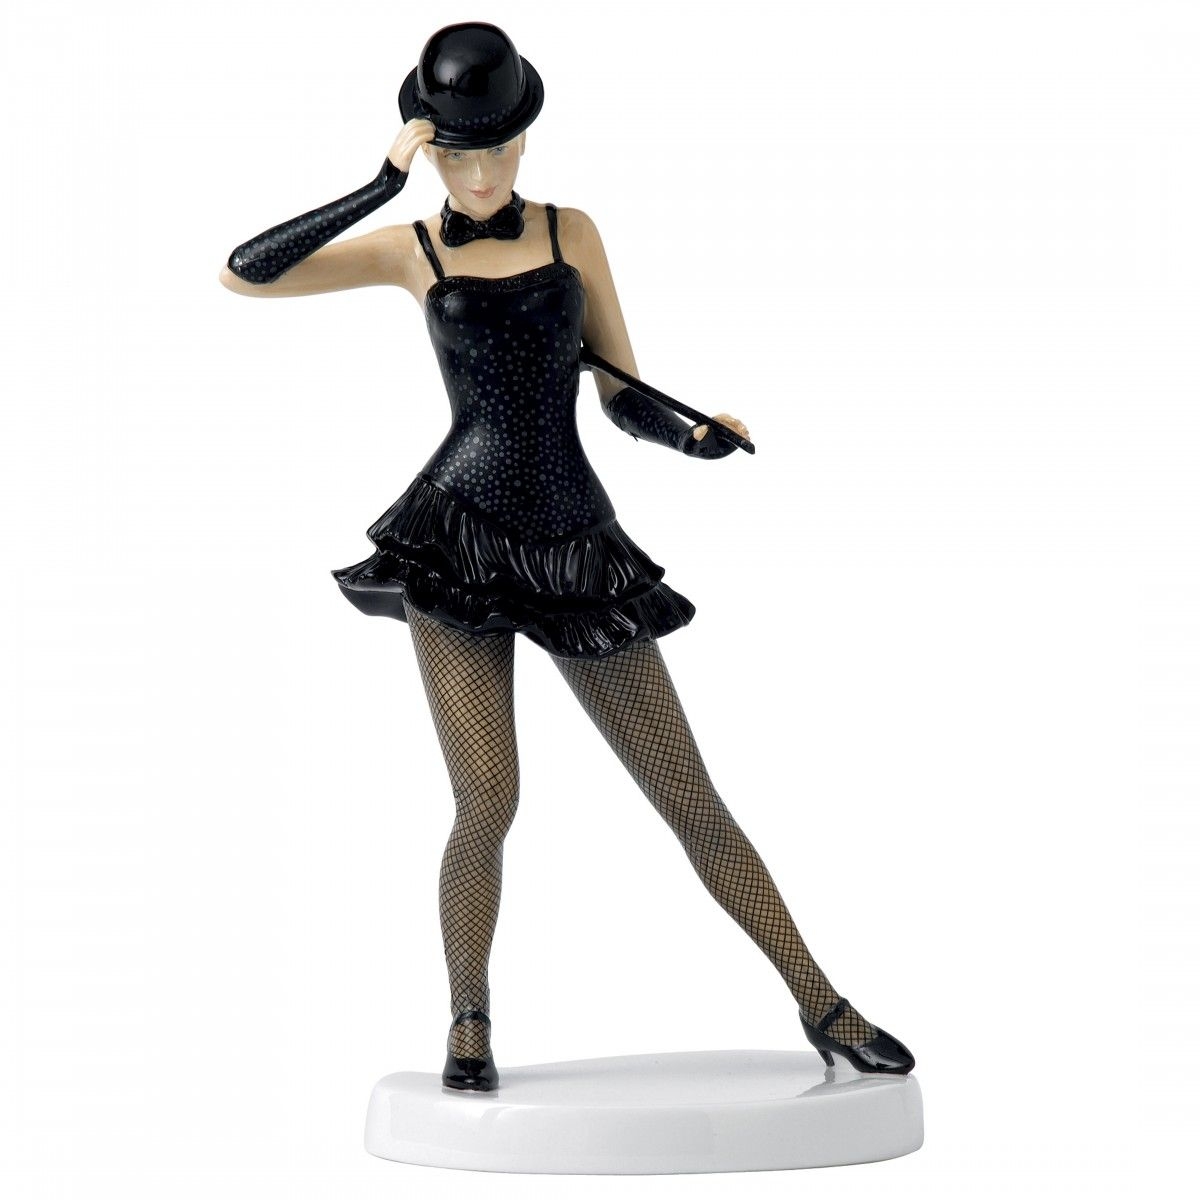 Royal Doulton Dances of the World, American Caberet,  The American Dancer wears a short black dress with a flared, swinging skirt and elbow length fingerless gloves and sports a black bow tie around her bare neck. Limited Edition 2500